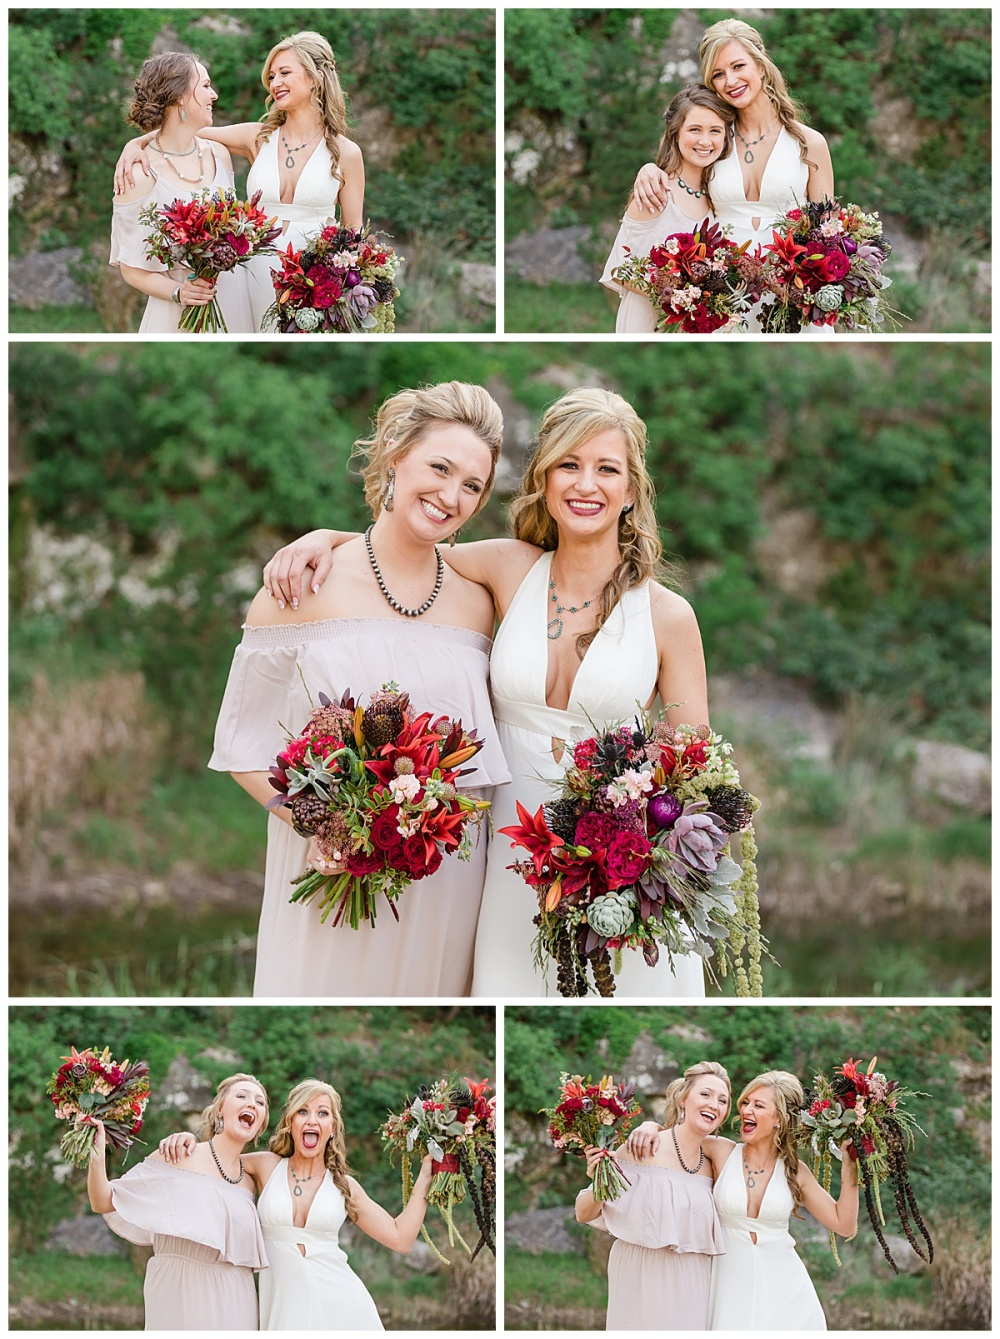 Eagle-Dancer-Ranch-Boerne-Texas-Wedding-Party-Barn-Carly-Barton-Photography_0039.jpg